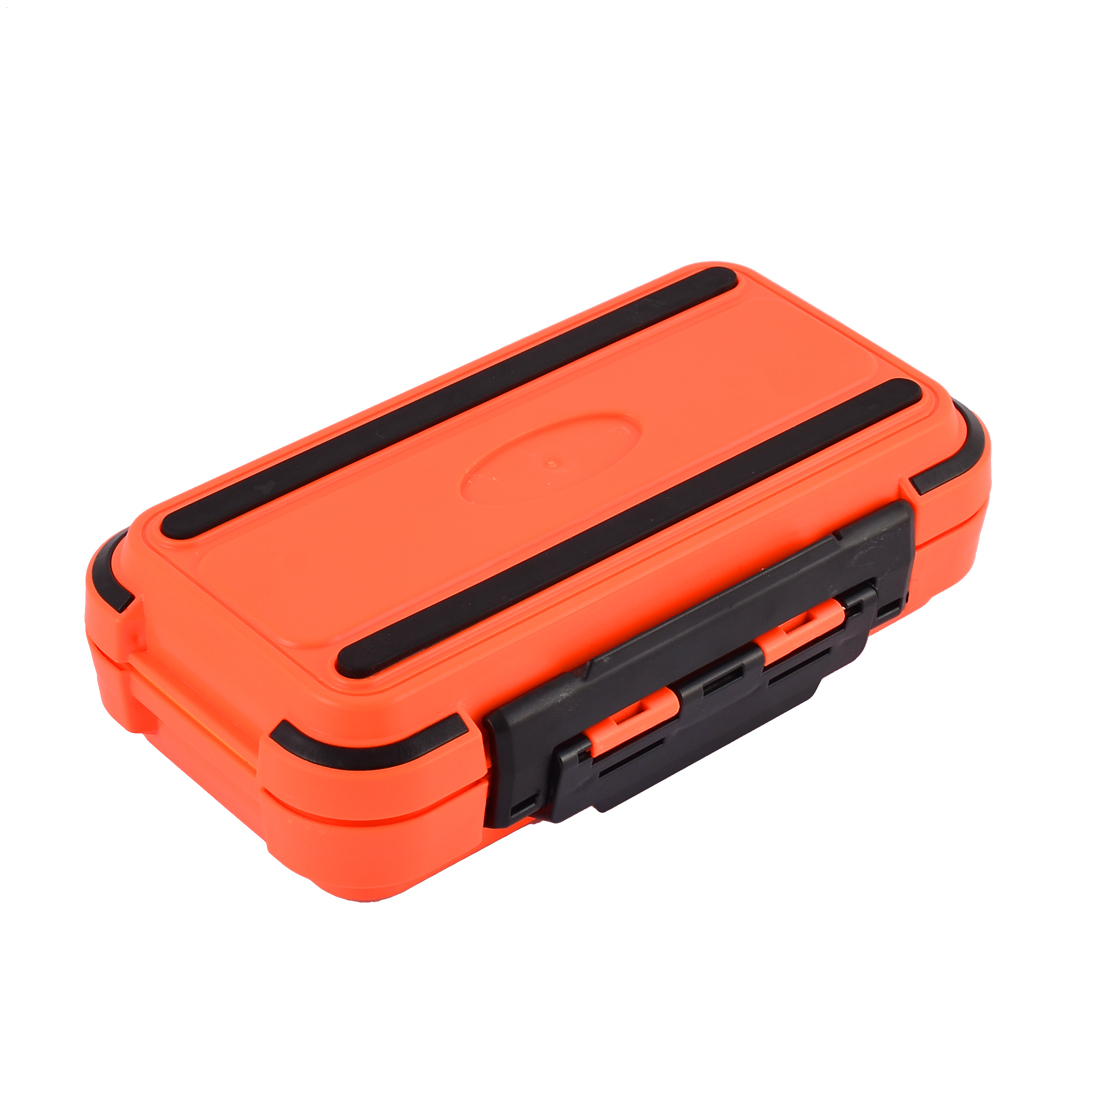 Fishing 24 Compartments Fish Hook Bait Storage Box Case Fishhook Holder Orange